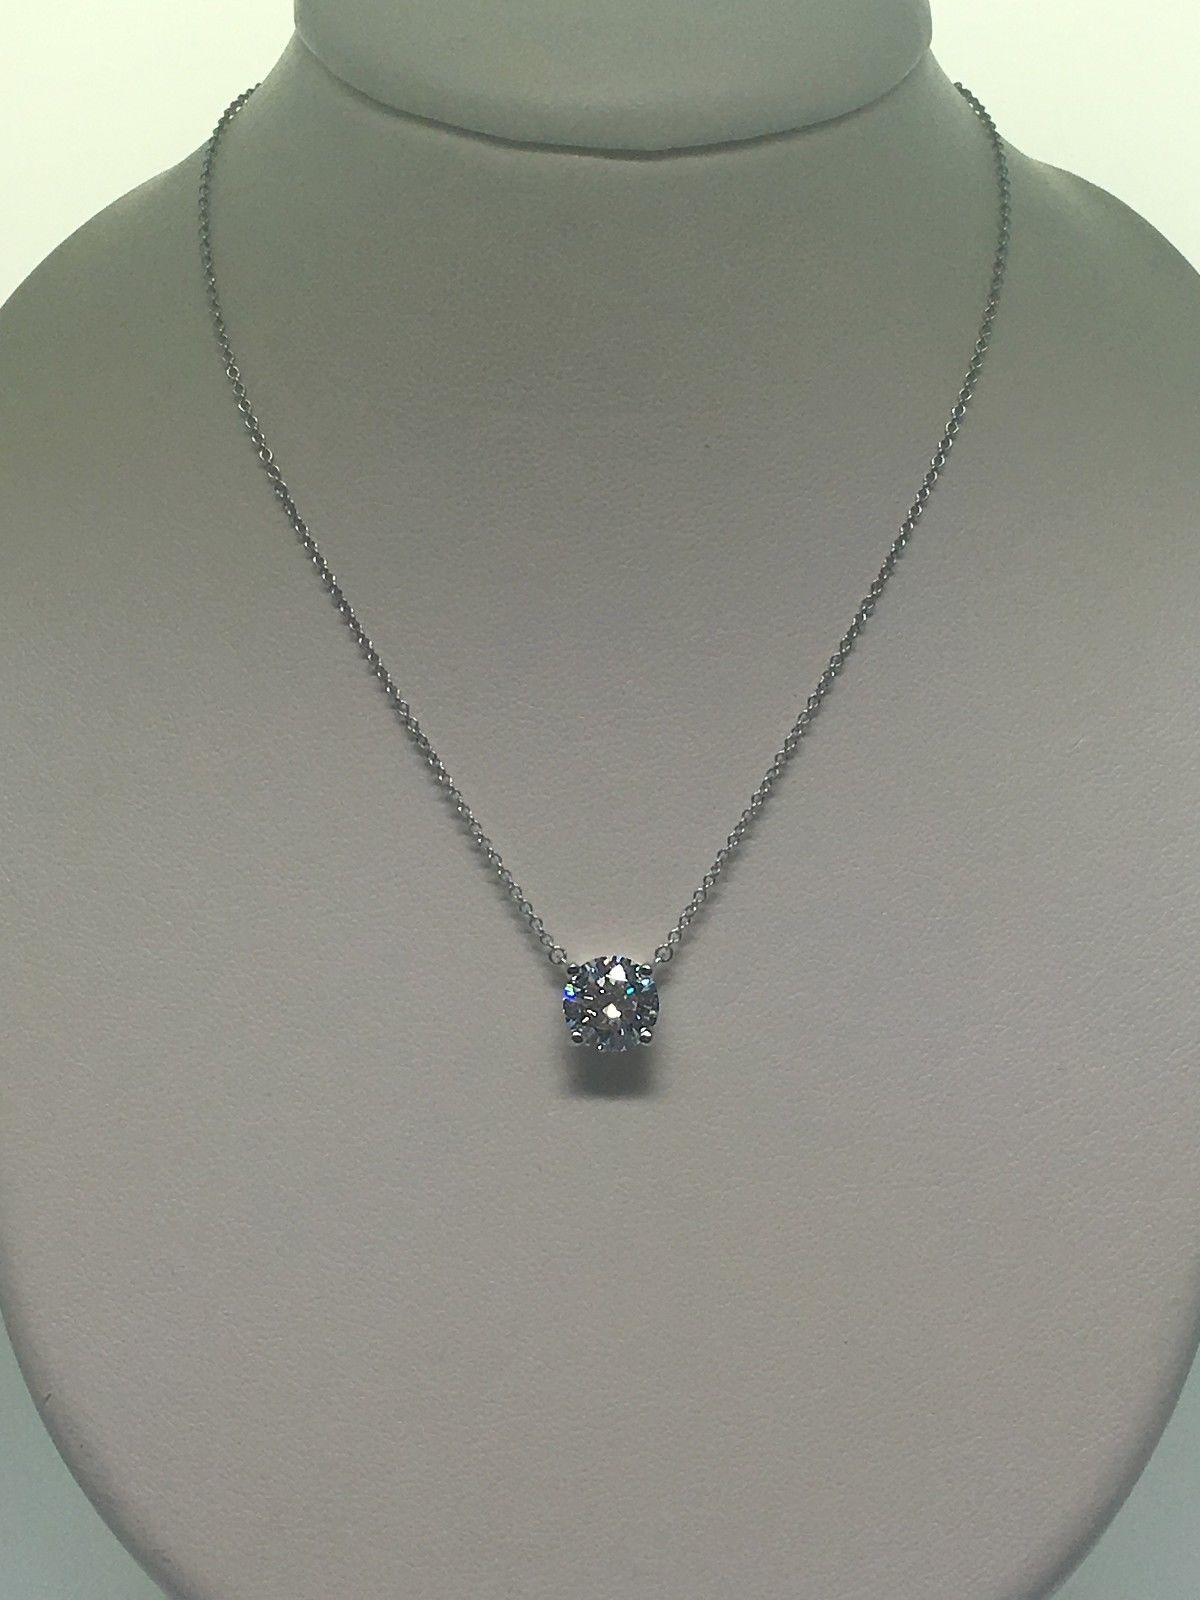 Tiffany Amp Co Diamond Stud Necklace Consignment 101